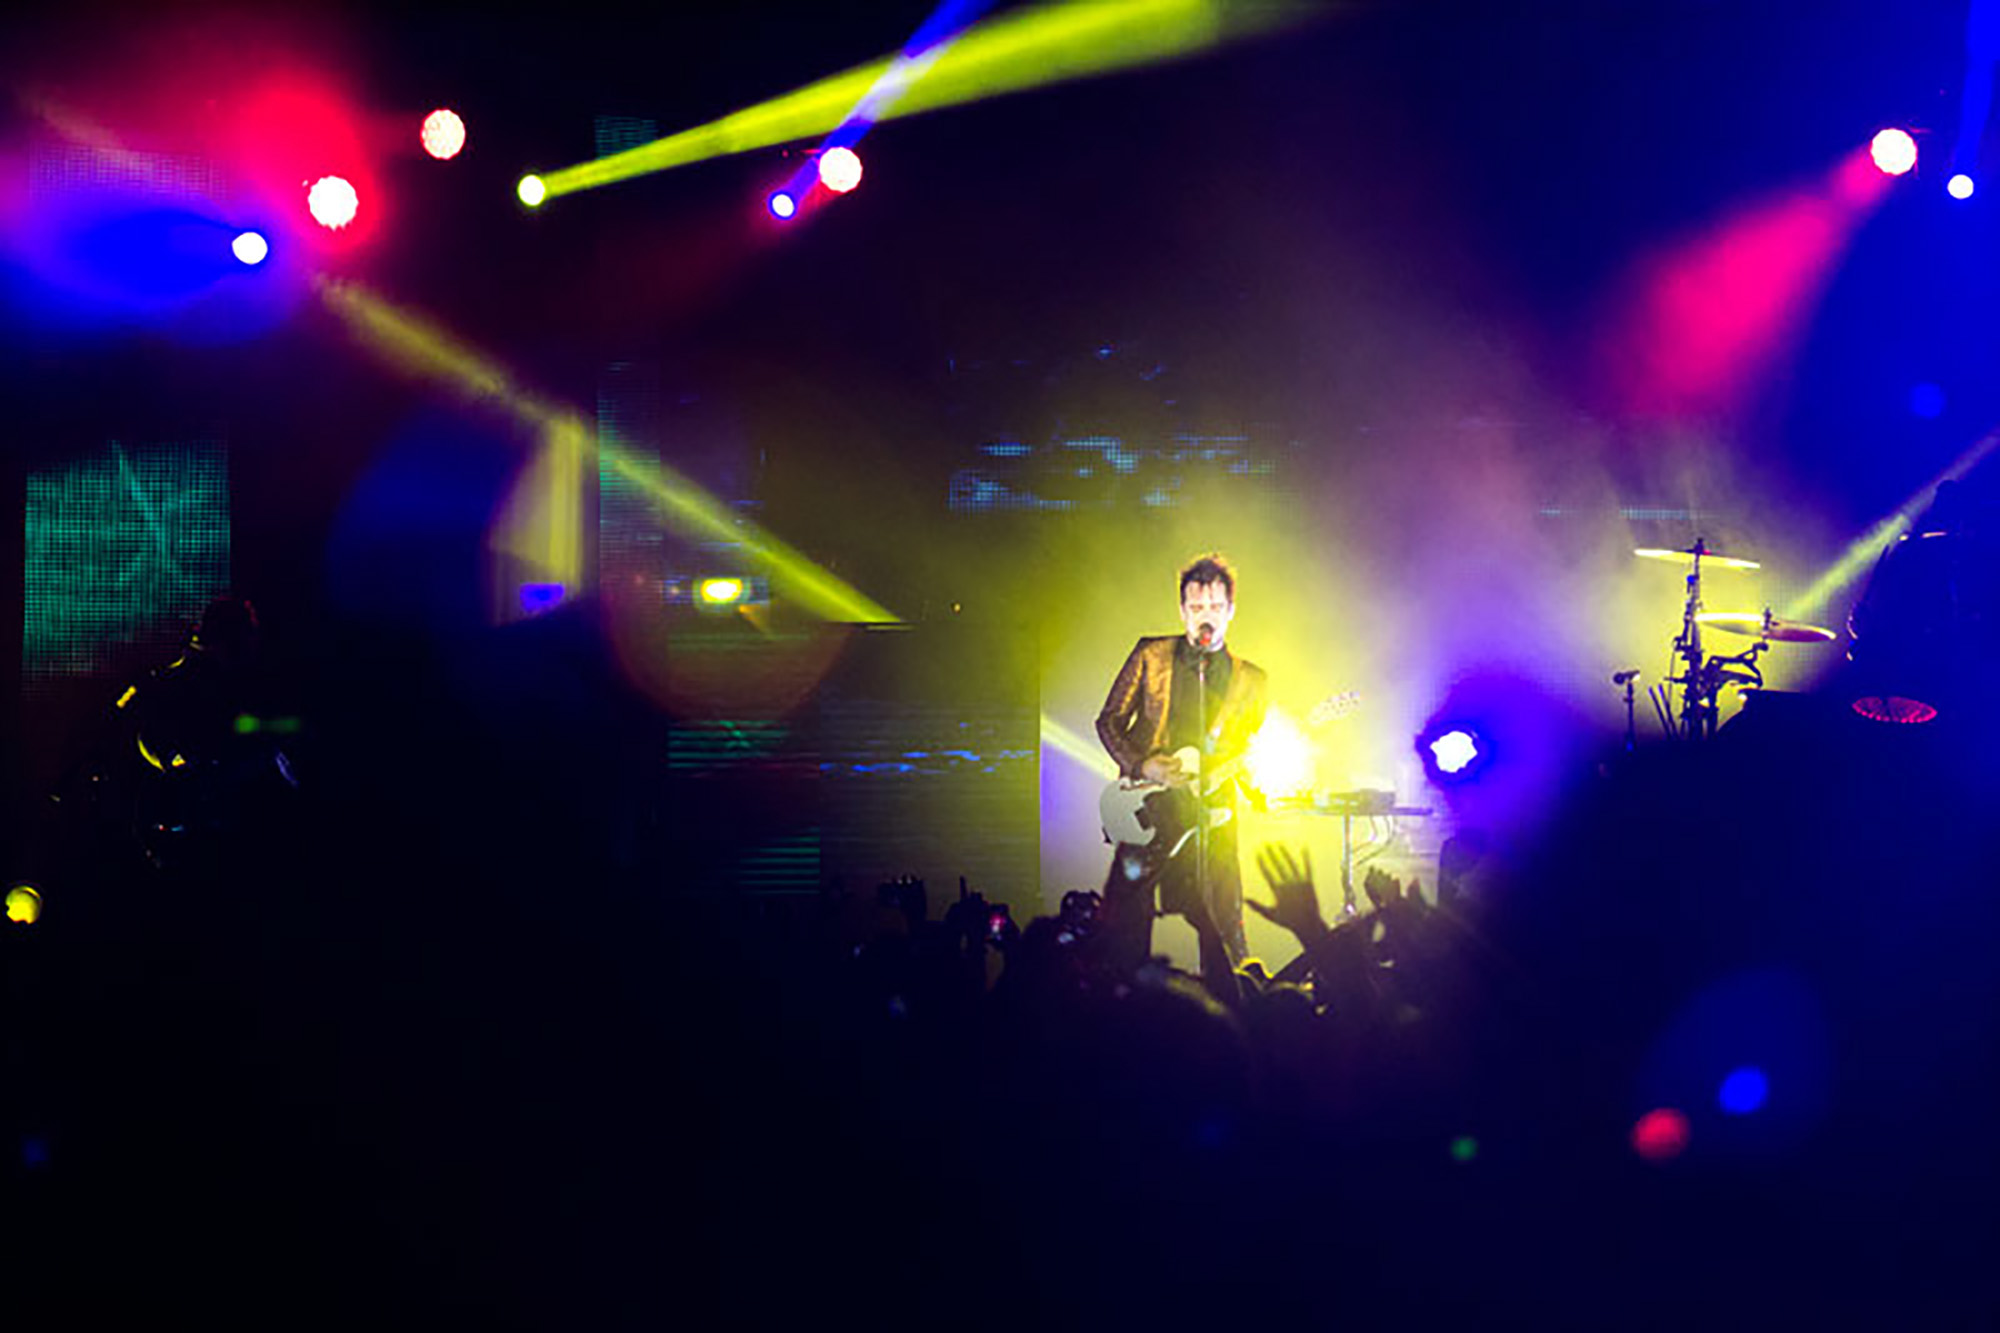 A special night for fans of old and new, Panic! at the Disco's Brendon Urie, 26, of Las Vegas, NV, performed at The Marquee Theatre in Tempe, AZ, for Valentine's Day.